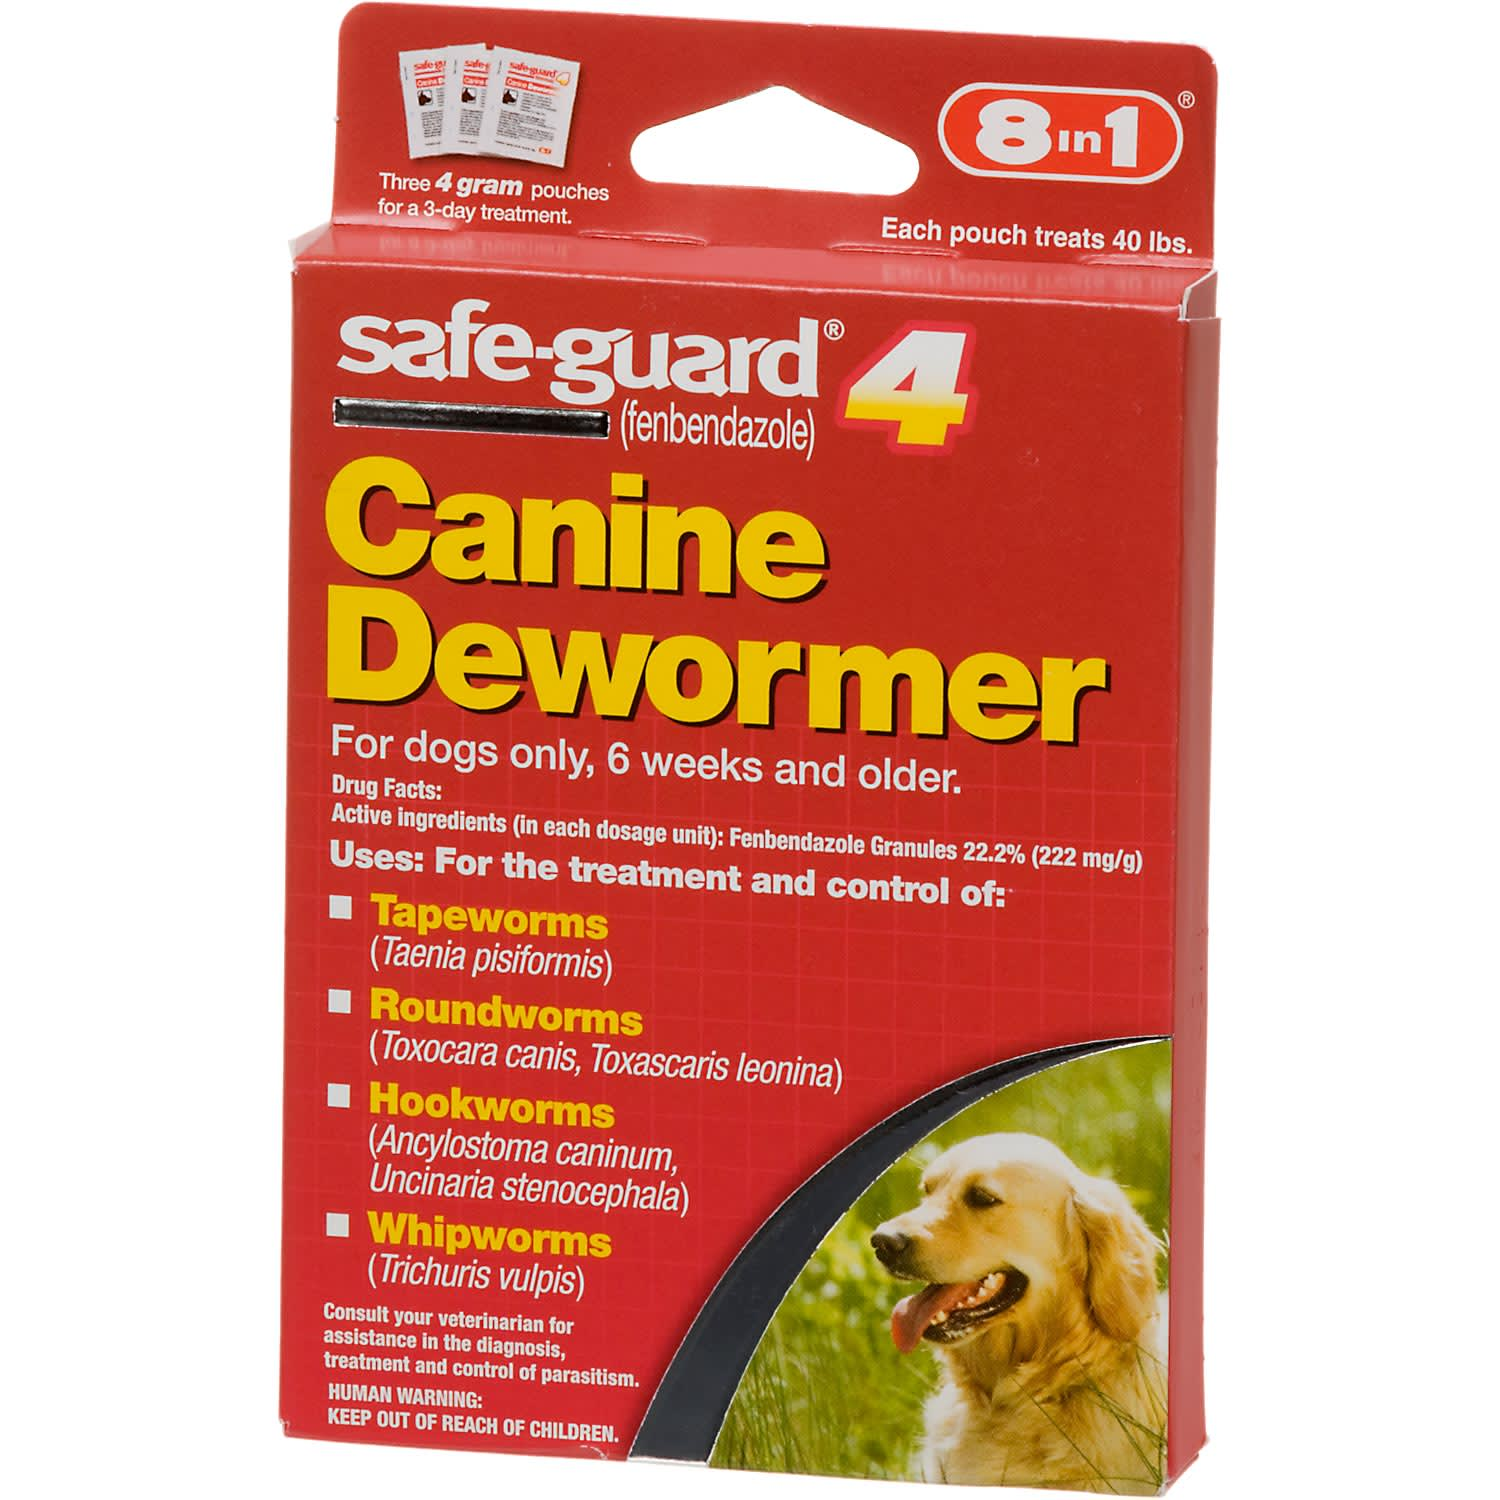 8 in 1 safe-guard 4 Canine Dewormer for Large Dogs, 4 G